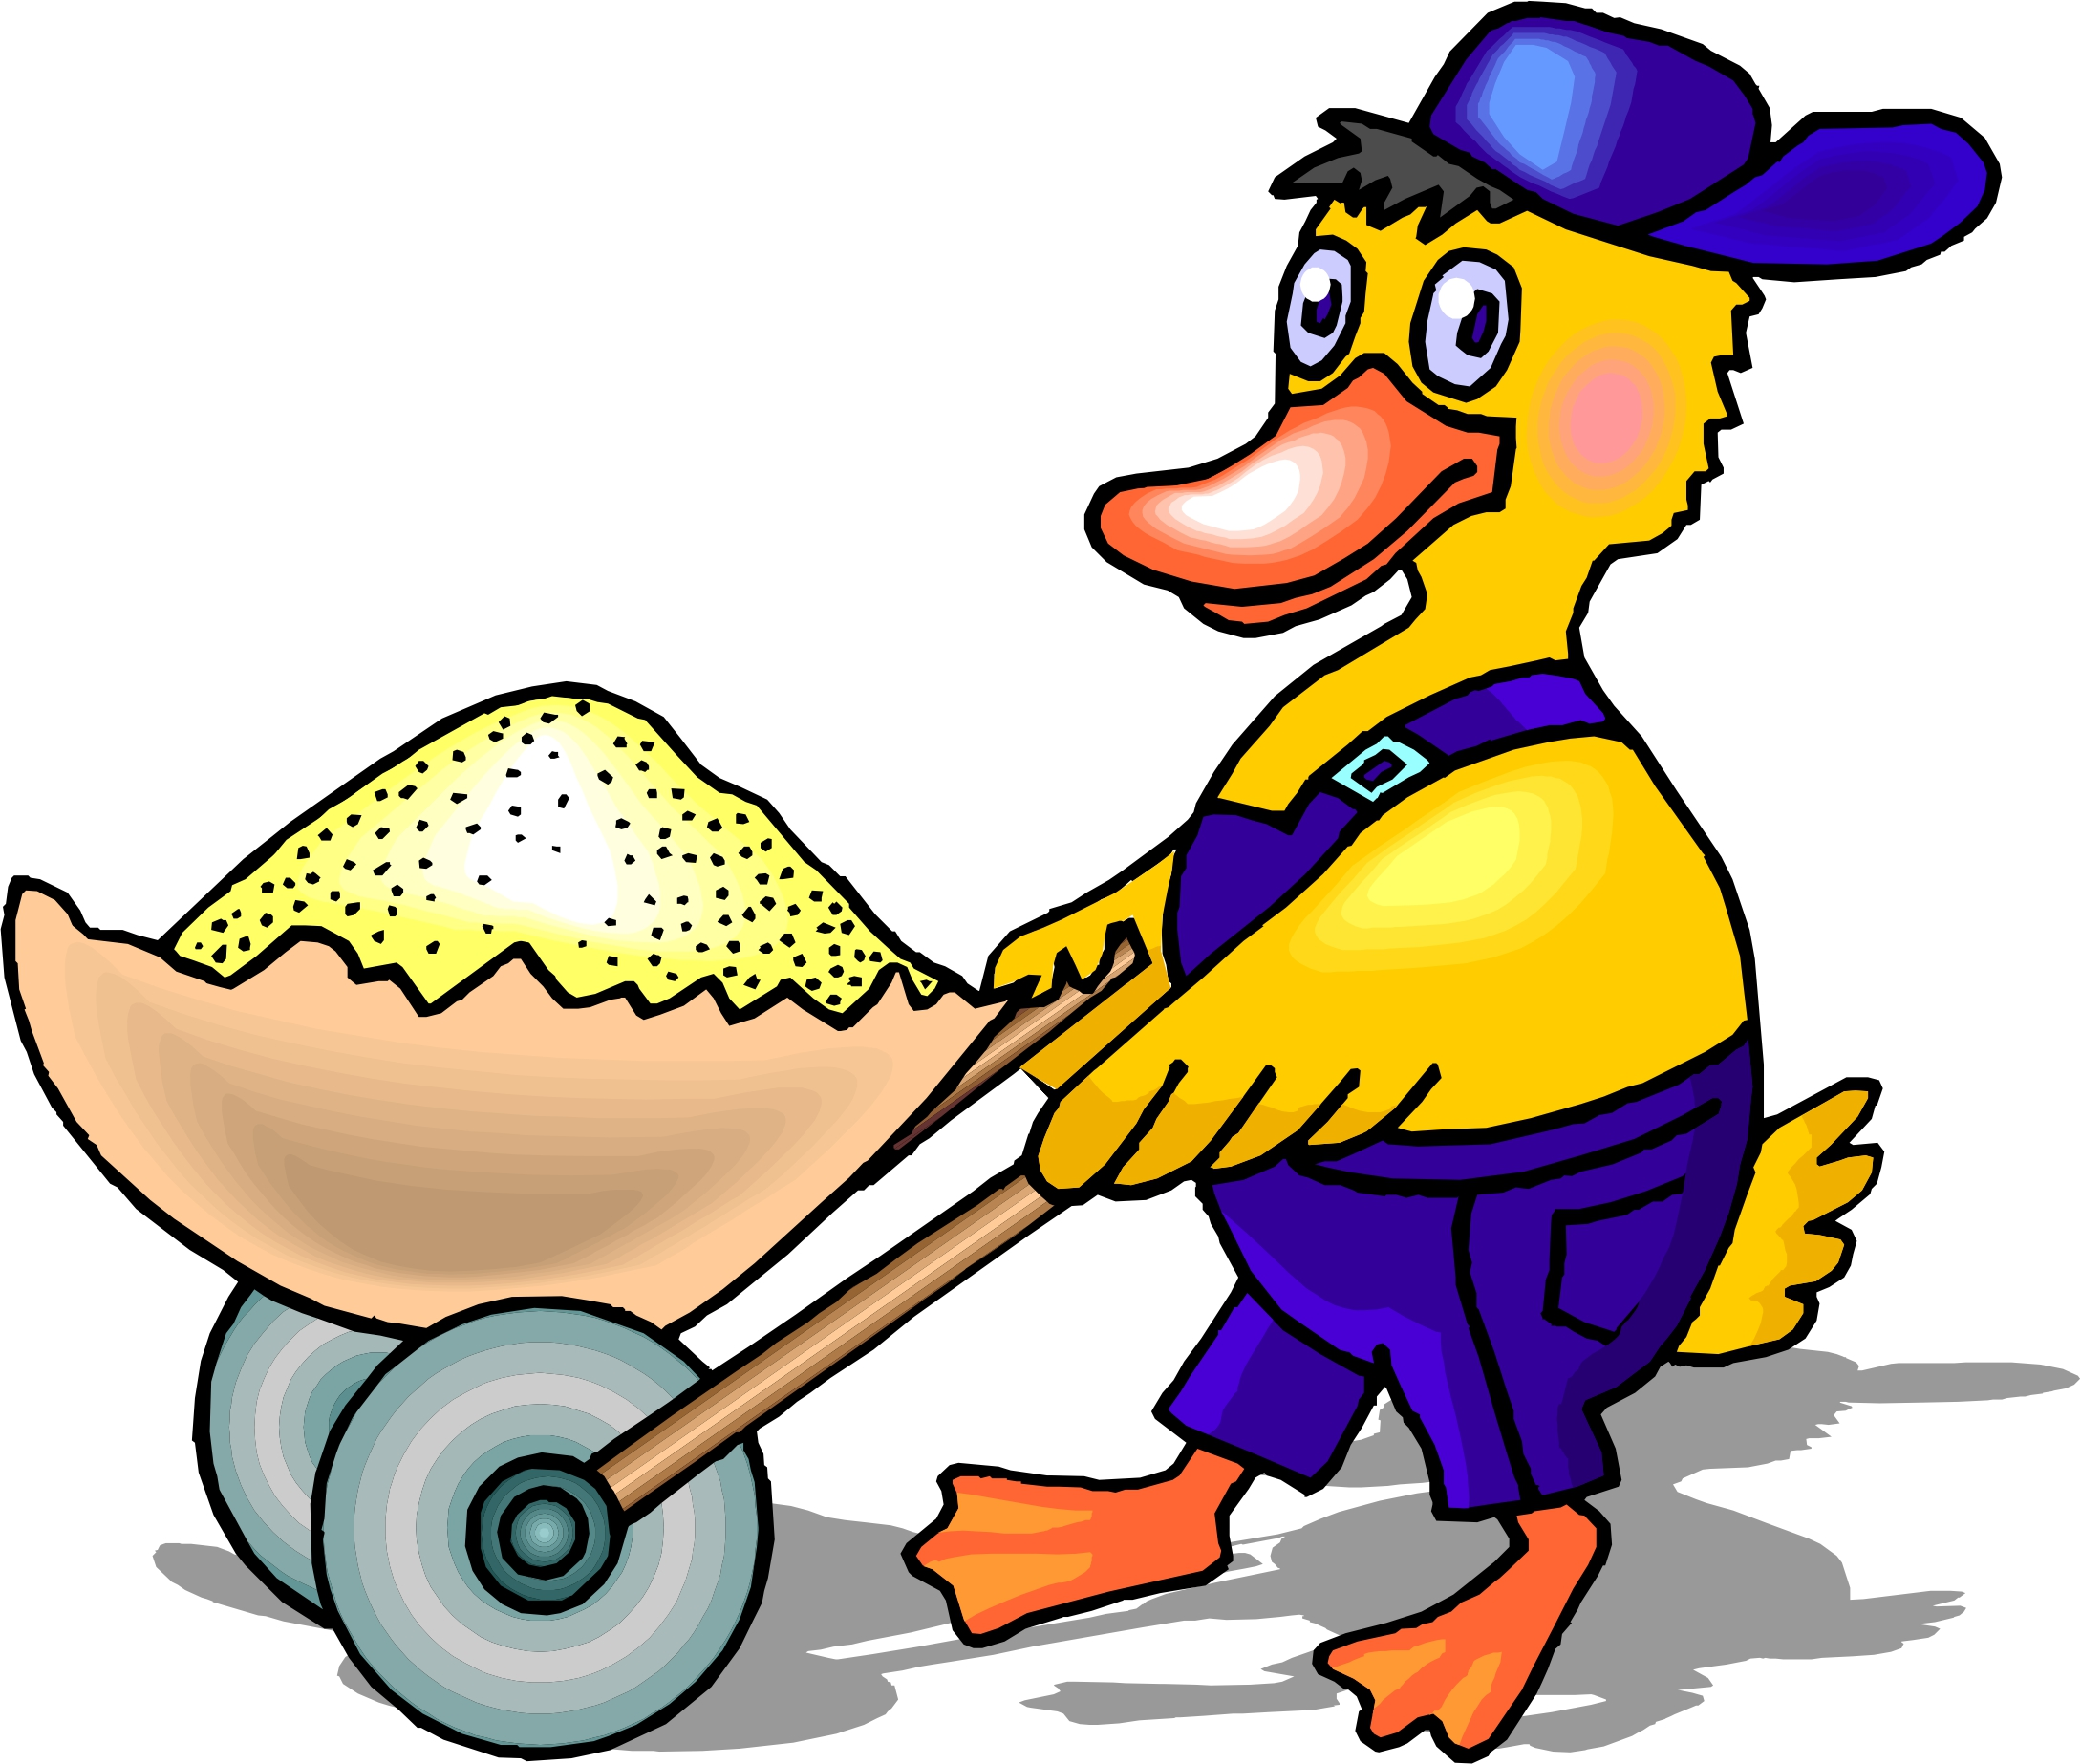 Cartoon Ducks | Page 3 - ClipArt Best - ClipArt Best